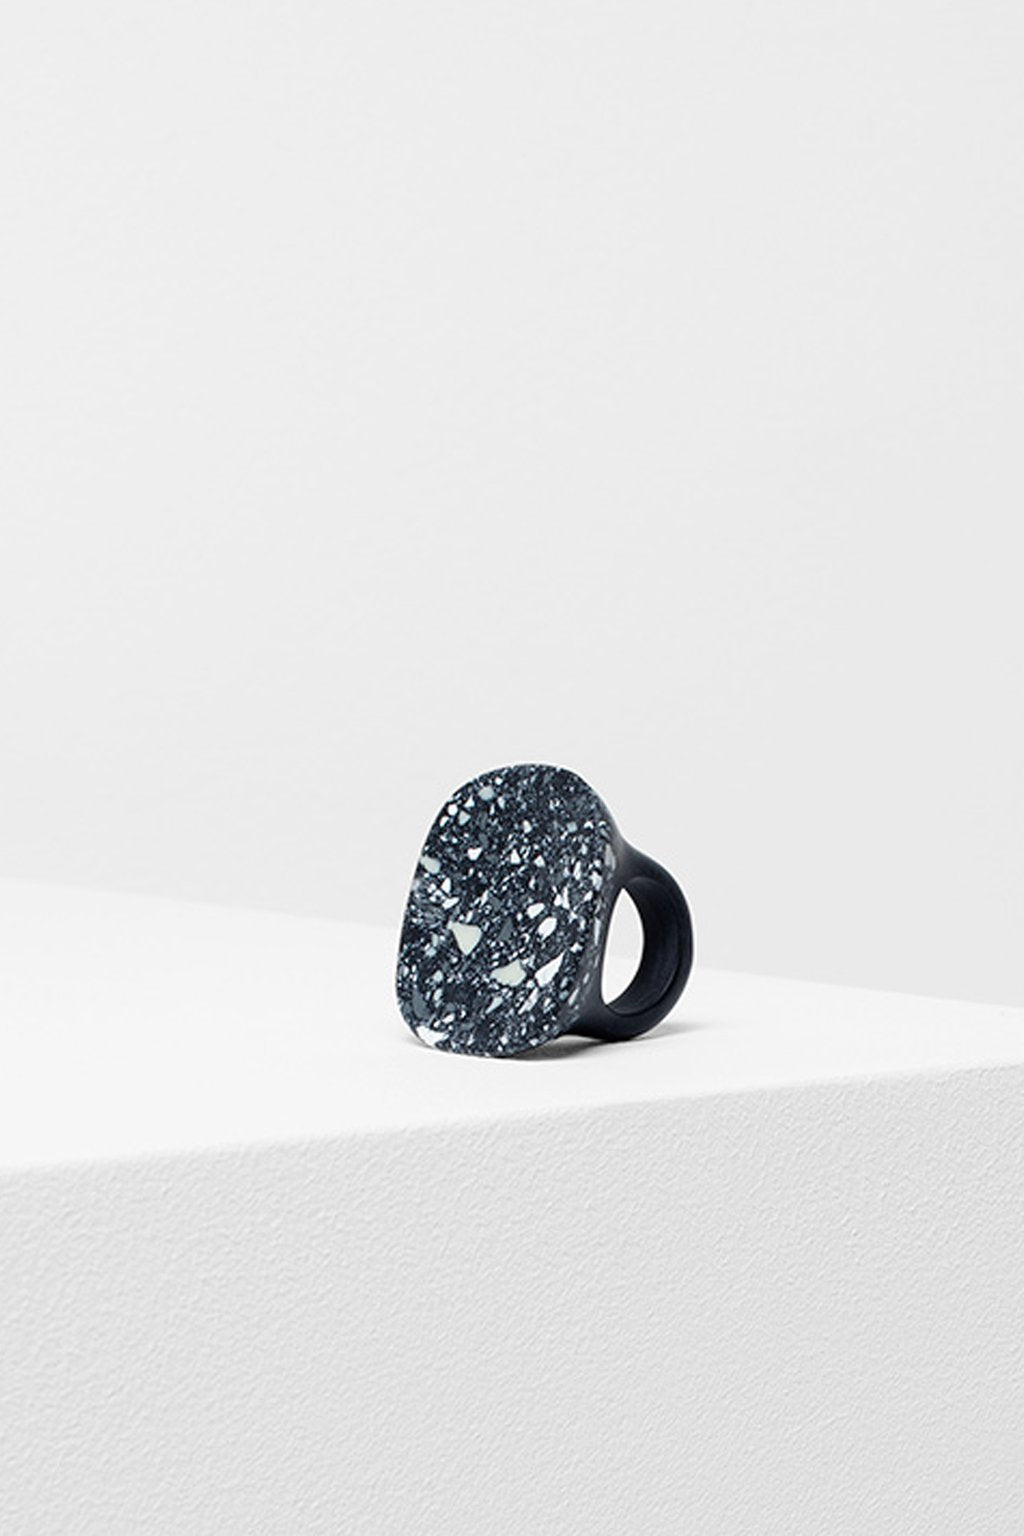 ELK The Label - Large Terrazzo Ring - Black online at PAYA boutique